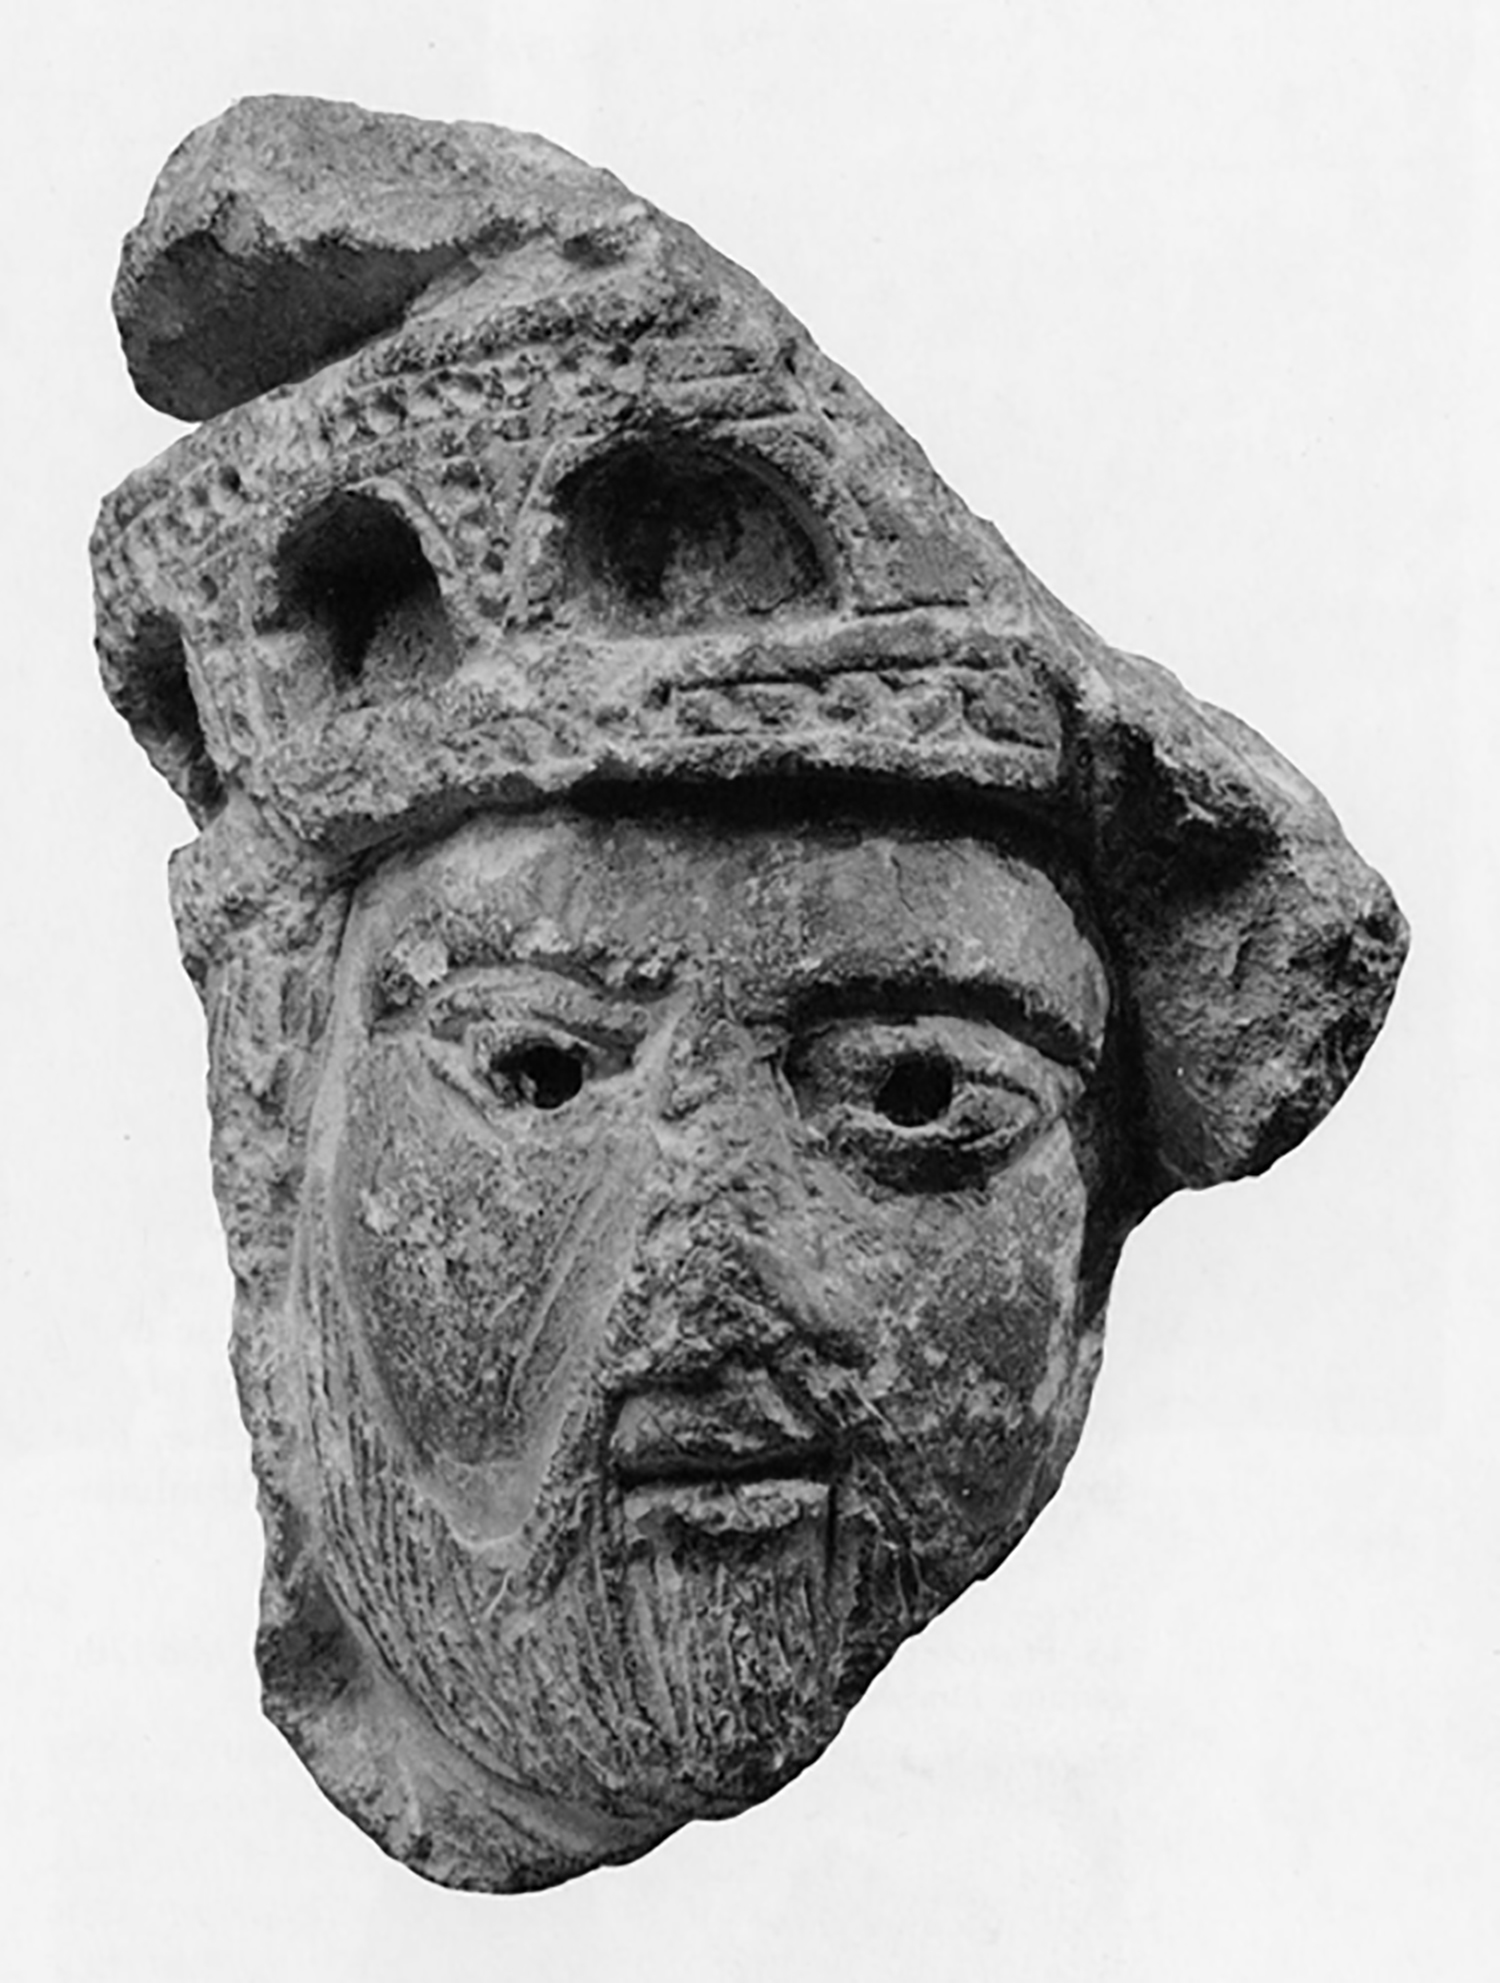 Figure 10: This 12th-century limestone head of a king from the Cathedral of Saint-Lazaire in Autun, France, may have been carved by the master sculptor Gislebertus or one of his assistants. Gislebertus is generally believed to have been charged with the decoration of the entire church. Glencairn Museum 09.SP.2.